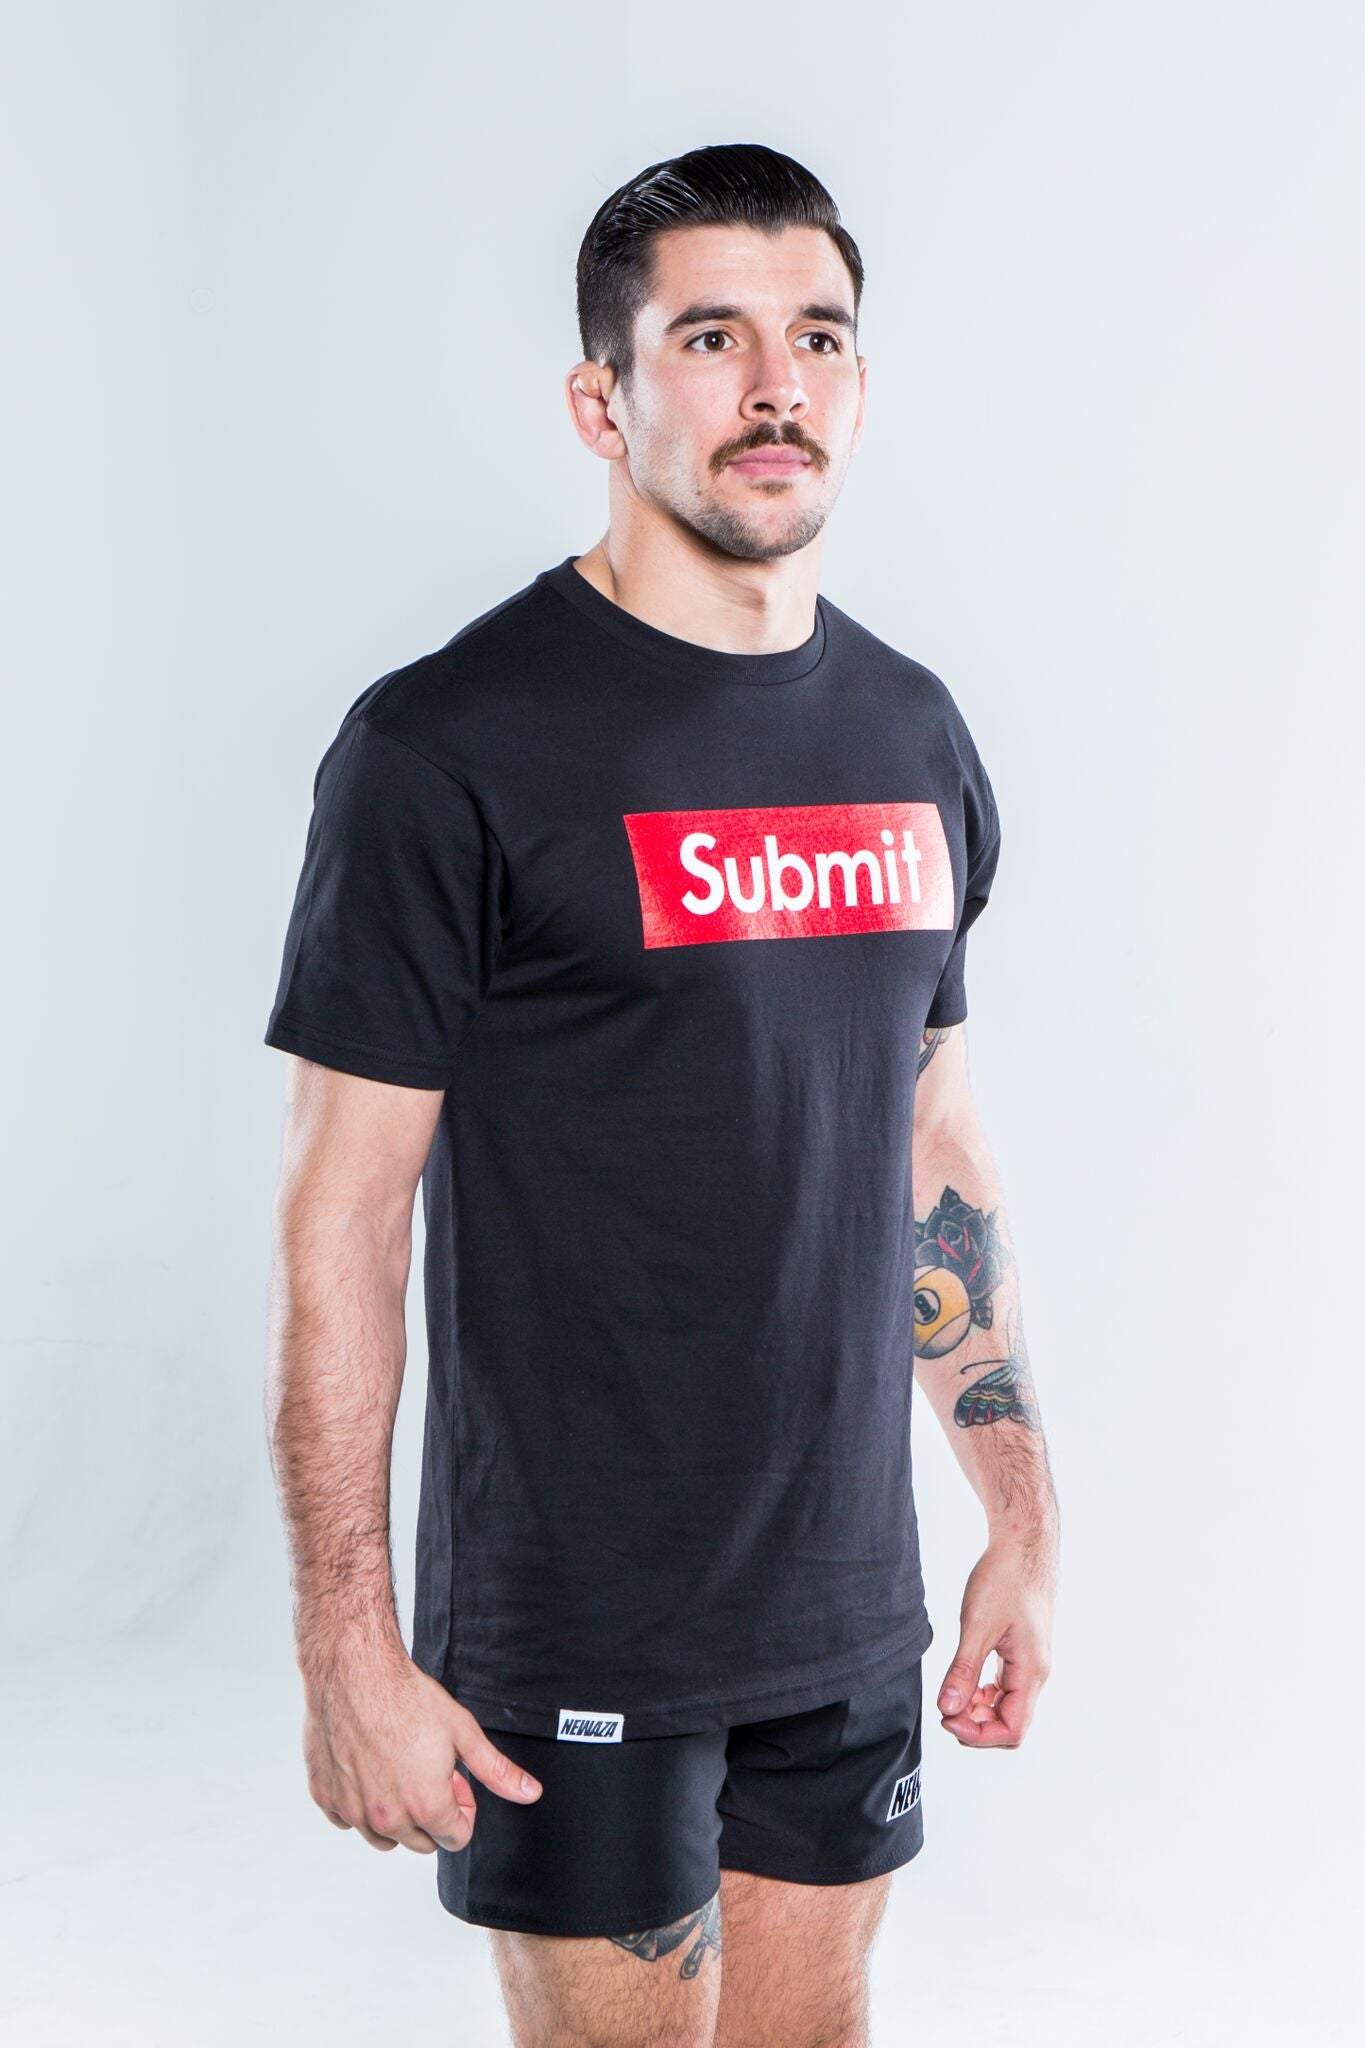 Submit Tee Black